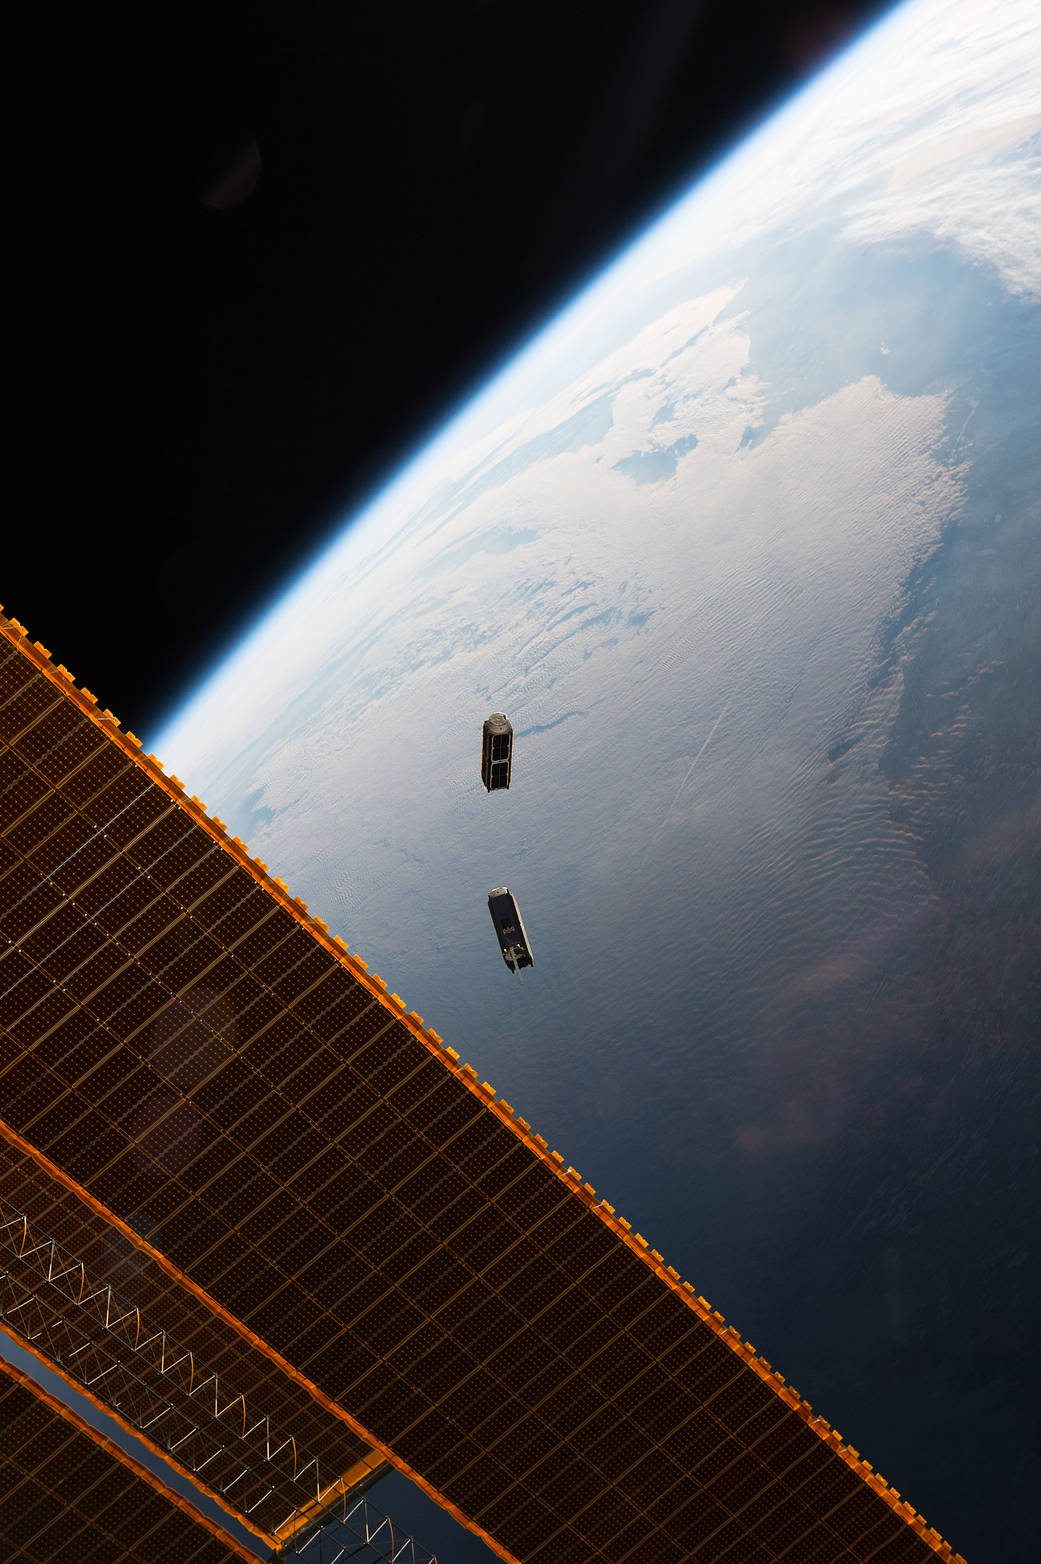 Two Cubesats in space moments after release with space station solar array visible and Earth below